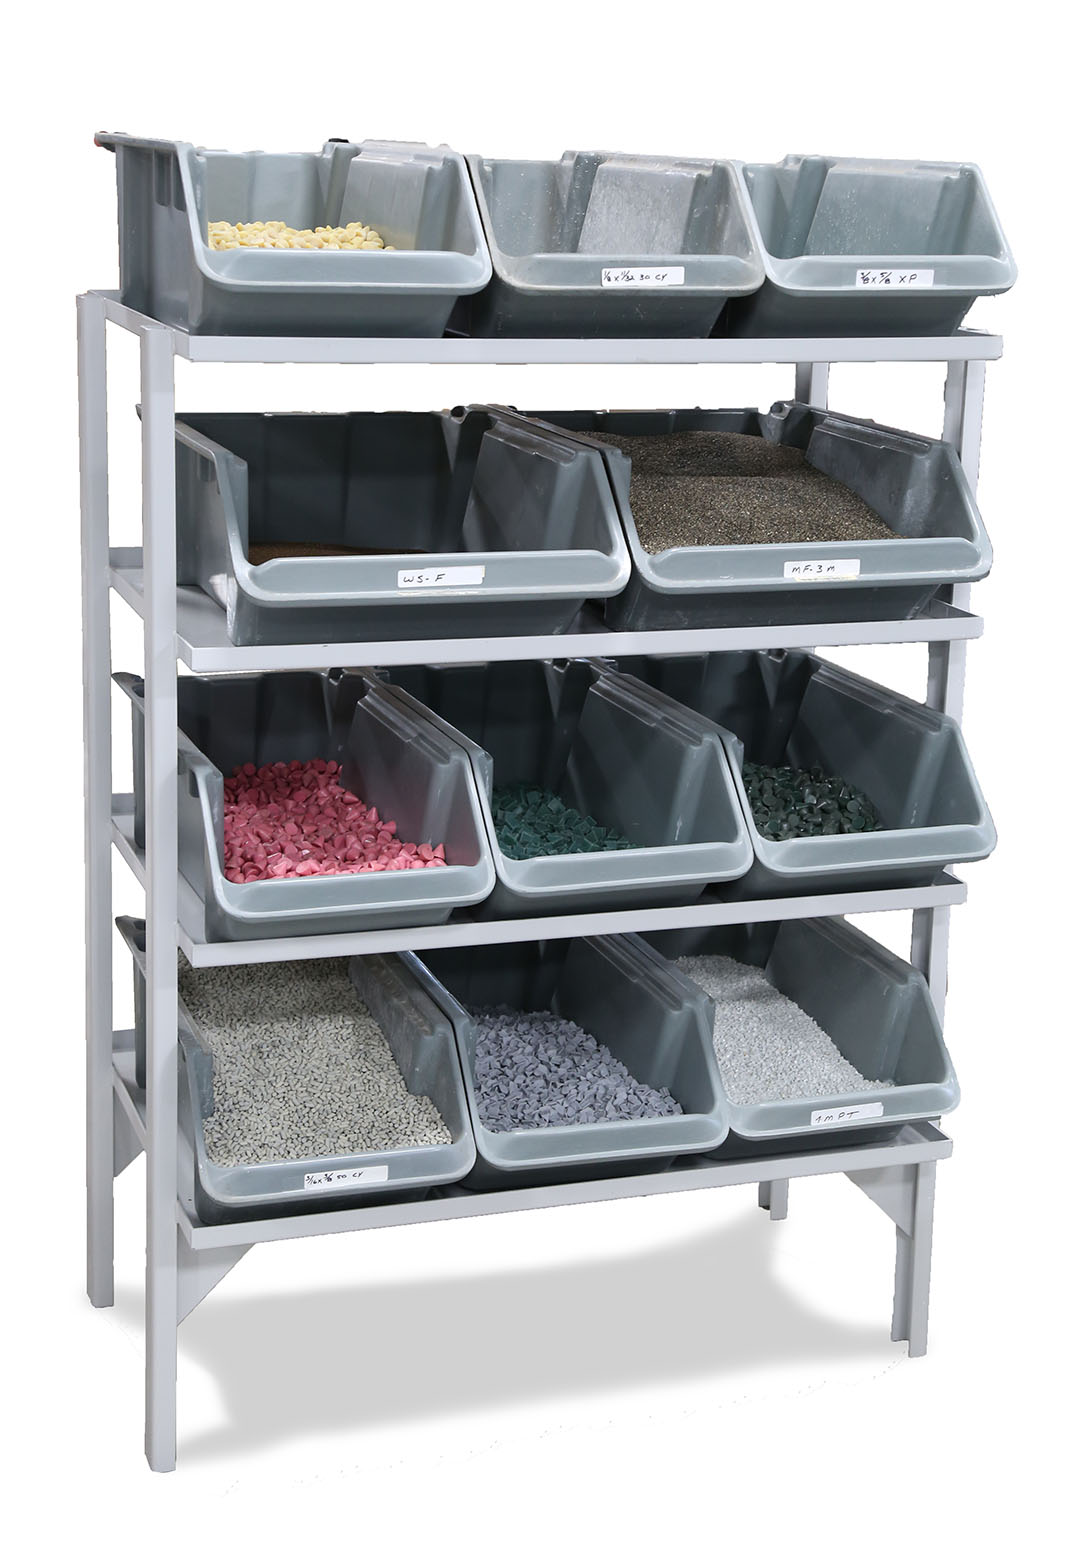 Rack filled with tumbling media